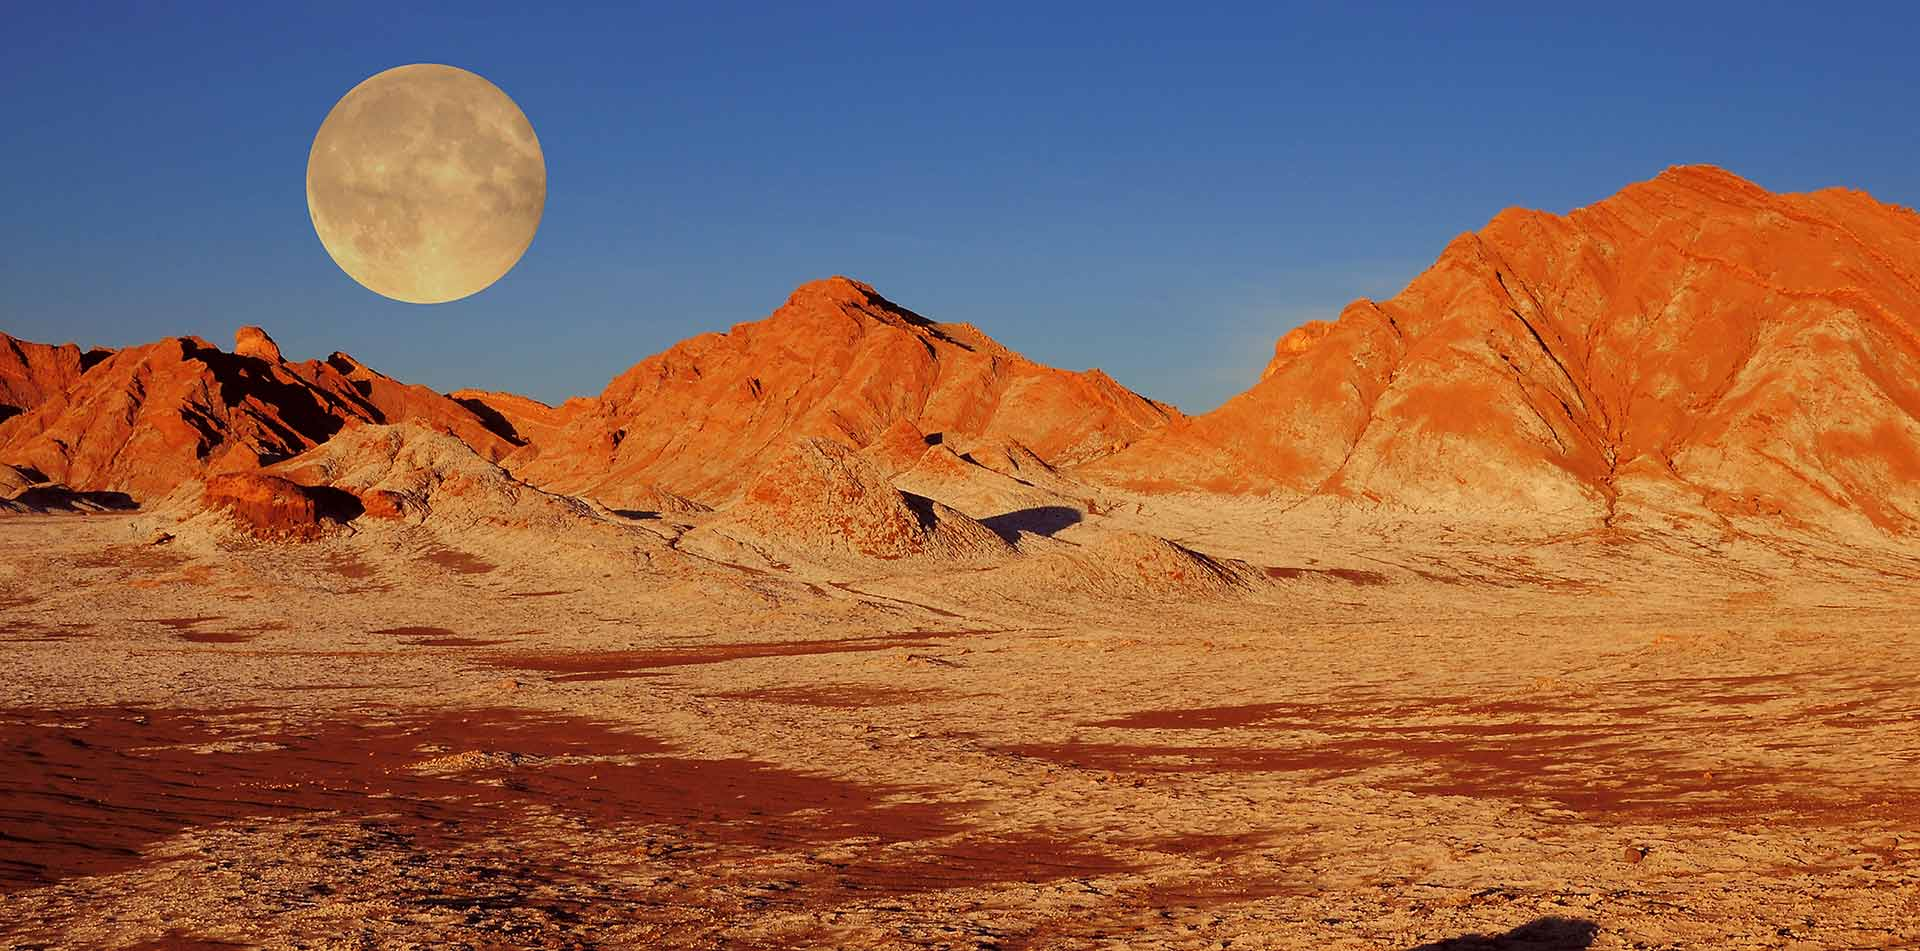 South America Chile Atacama Desert Massive Moon Crater Salt Deposit Image Hiking View  - luxury vacation destinations